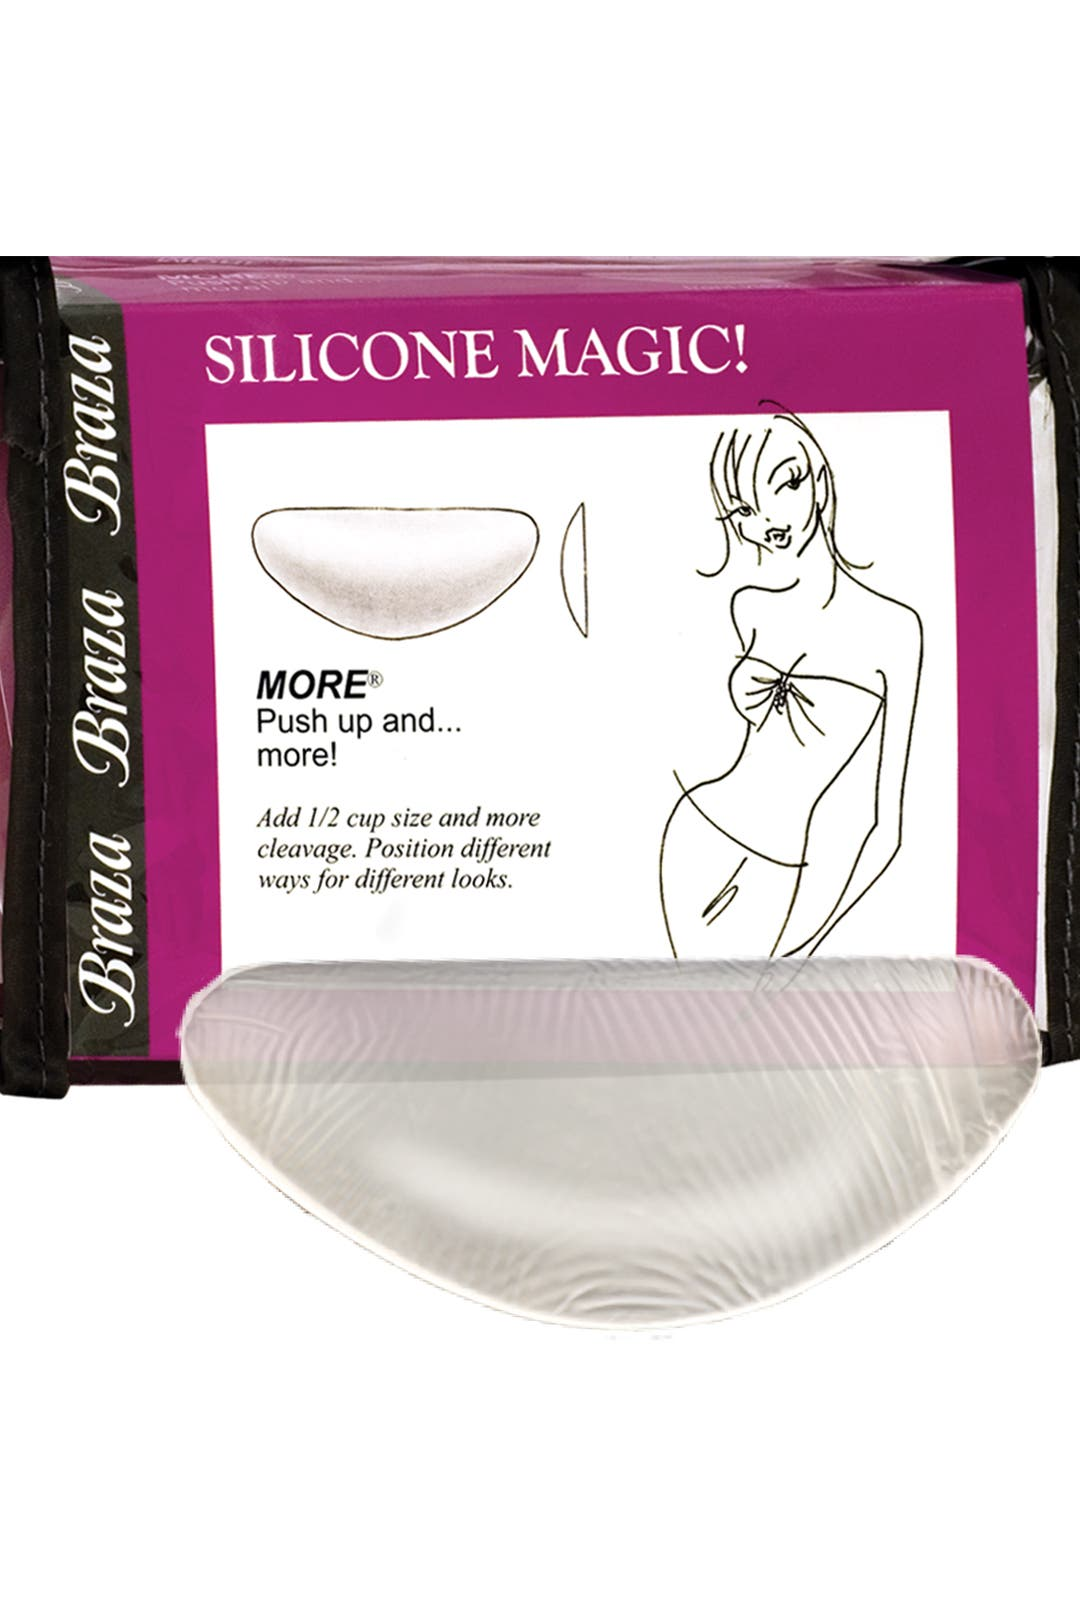 Silicone Magic Push Up Bra Inserts by Braza